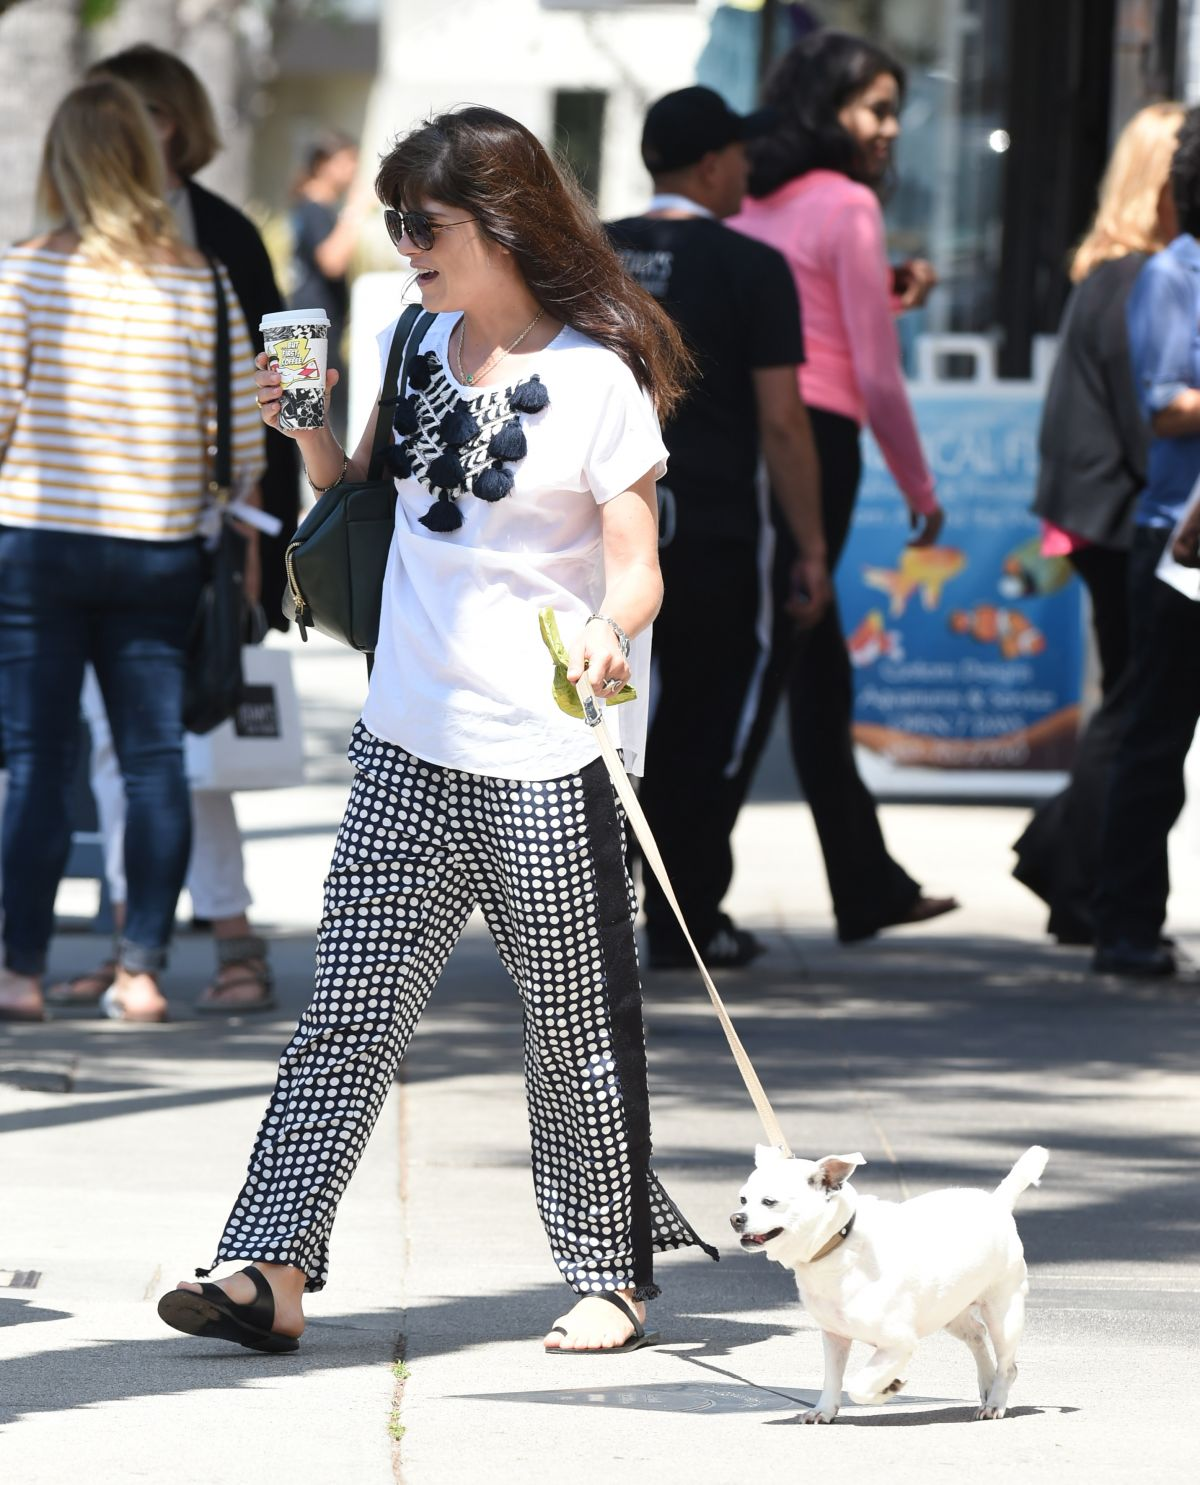 Selma Blair Out with her dog in LA   selma-blair-out-with-her-dog-in-la-_13